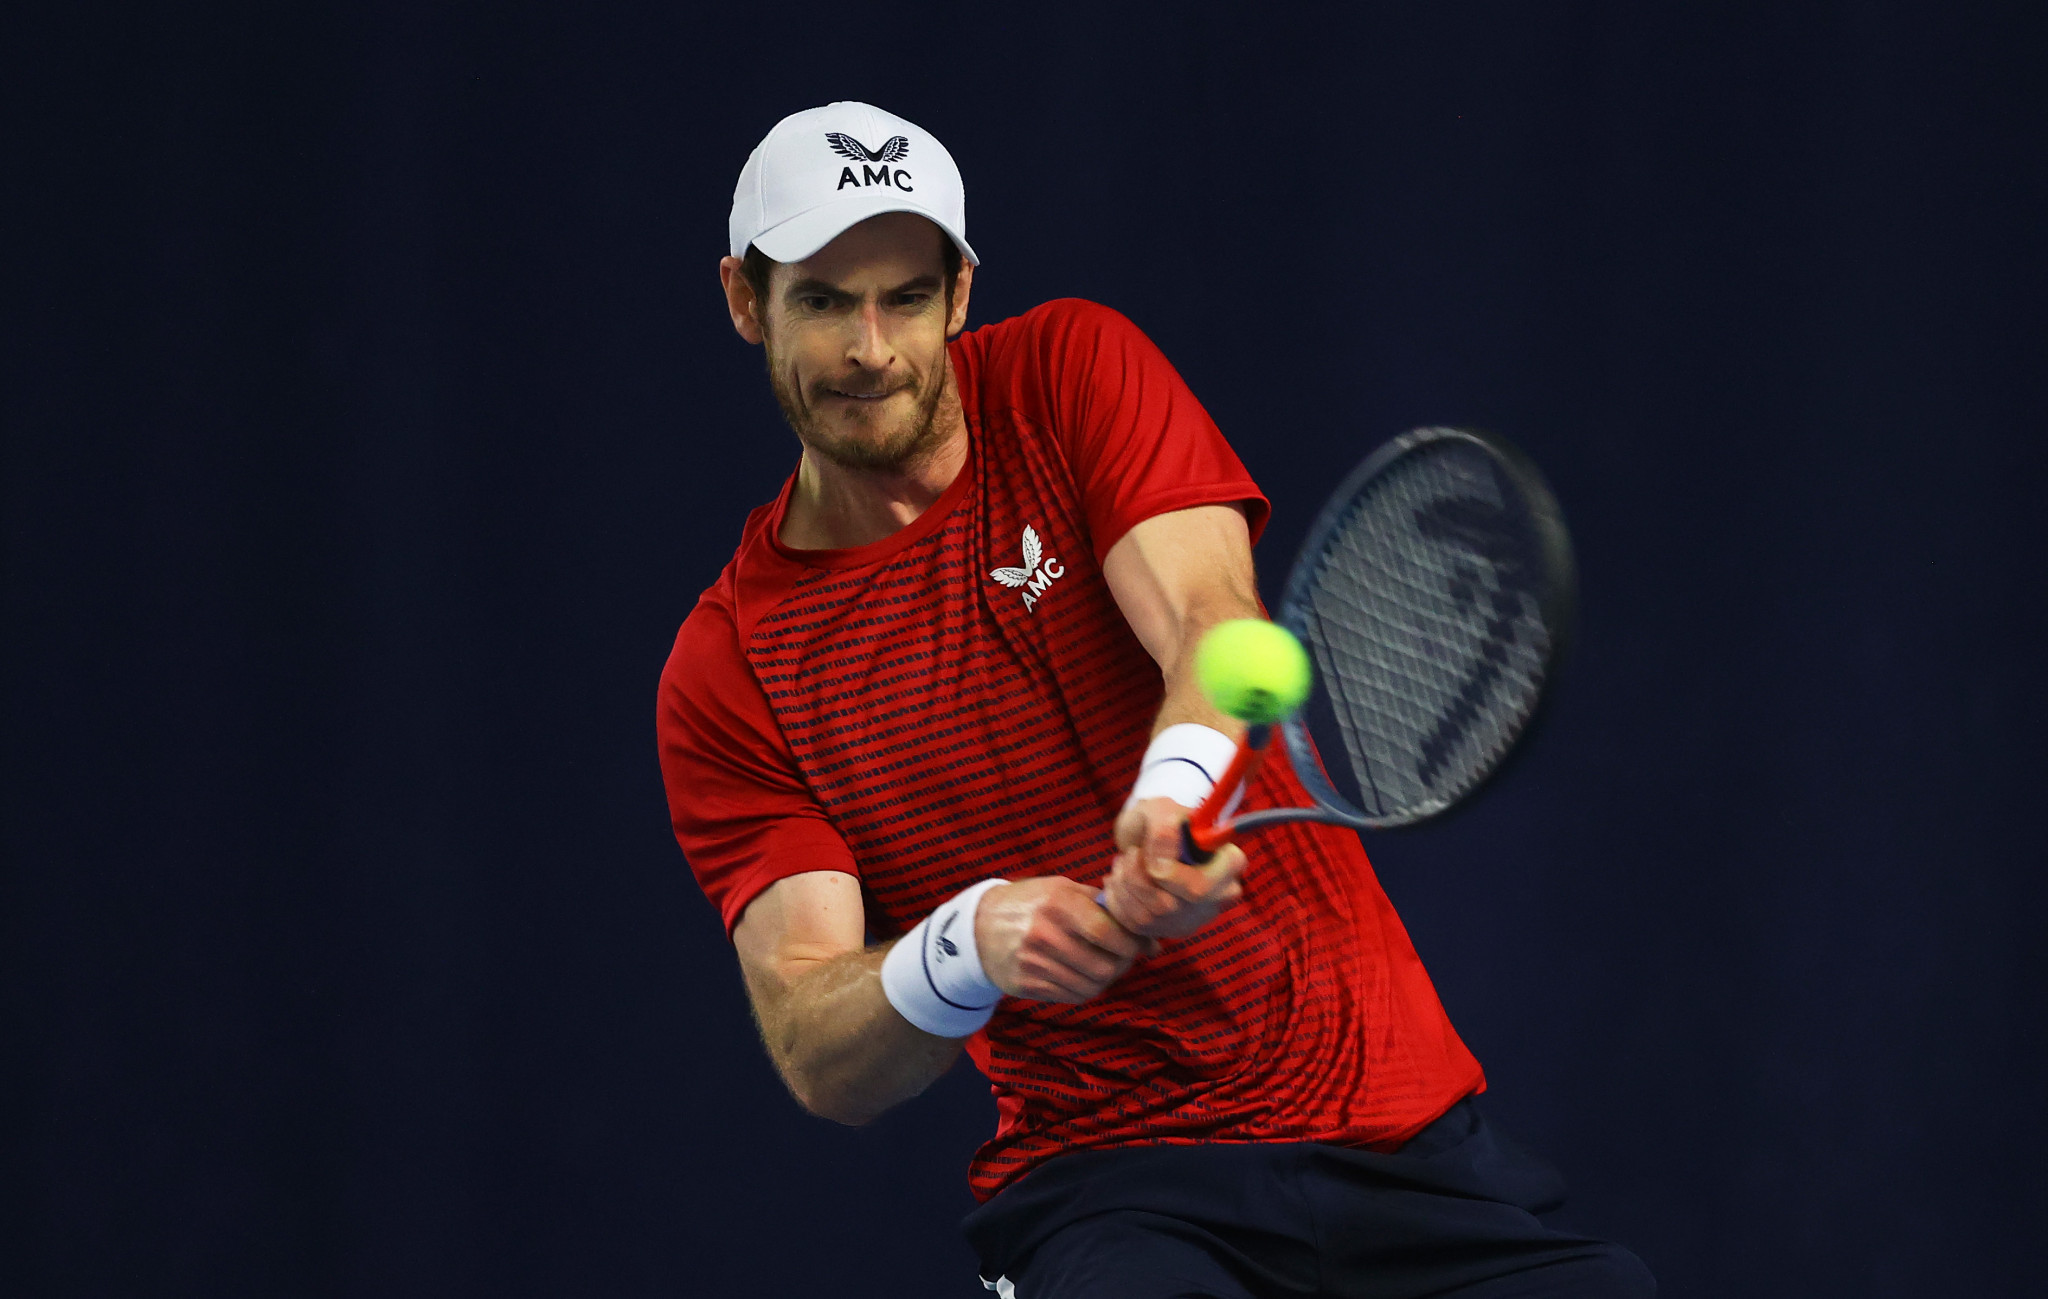 Murray ruled out of Australian Open and Badosa tests positive for COVID-19